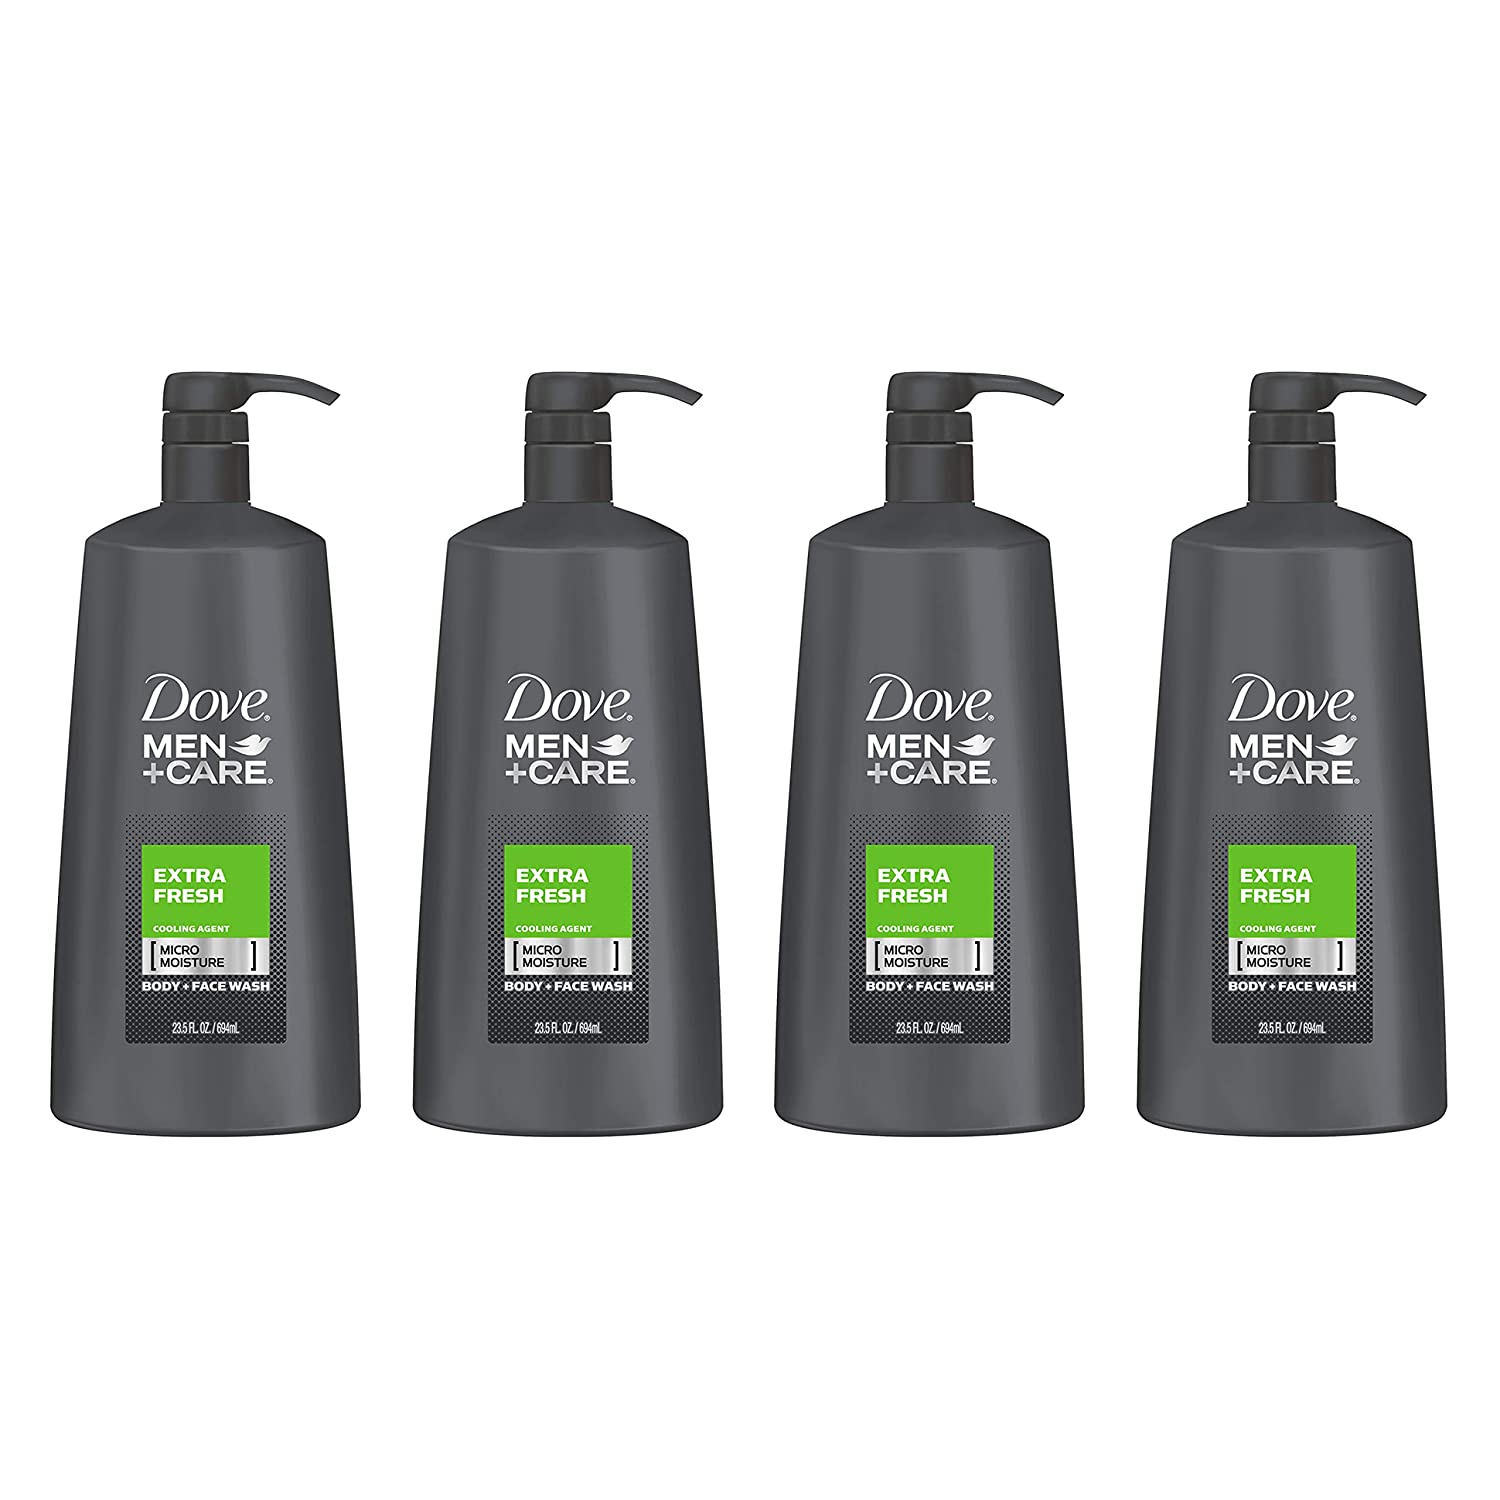 Dove Men+Care Body and Face Wash, Extra Fresh, 23.5 Fl Oz (Pack of 4)